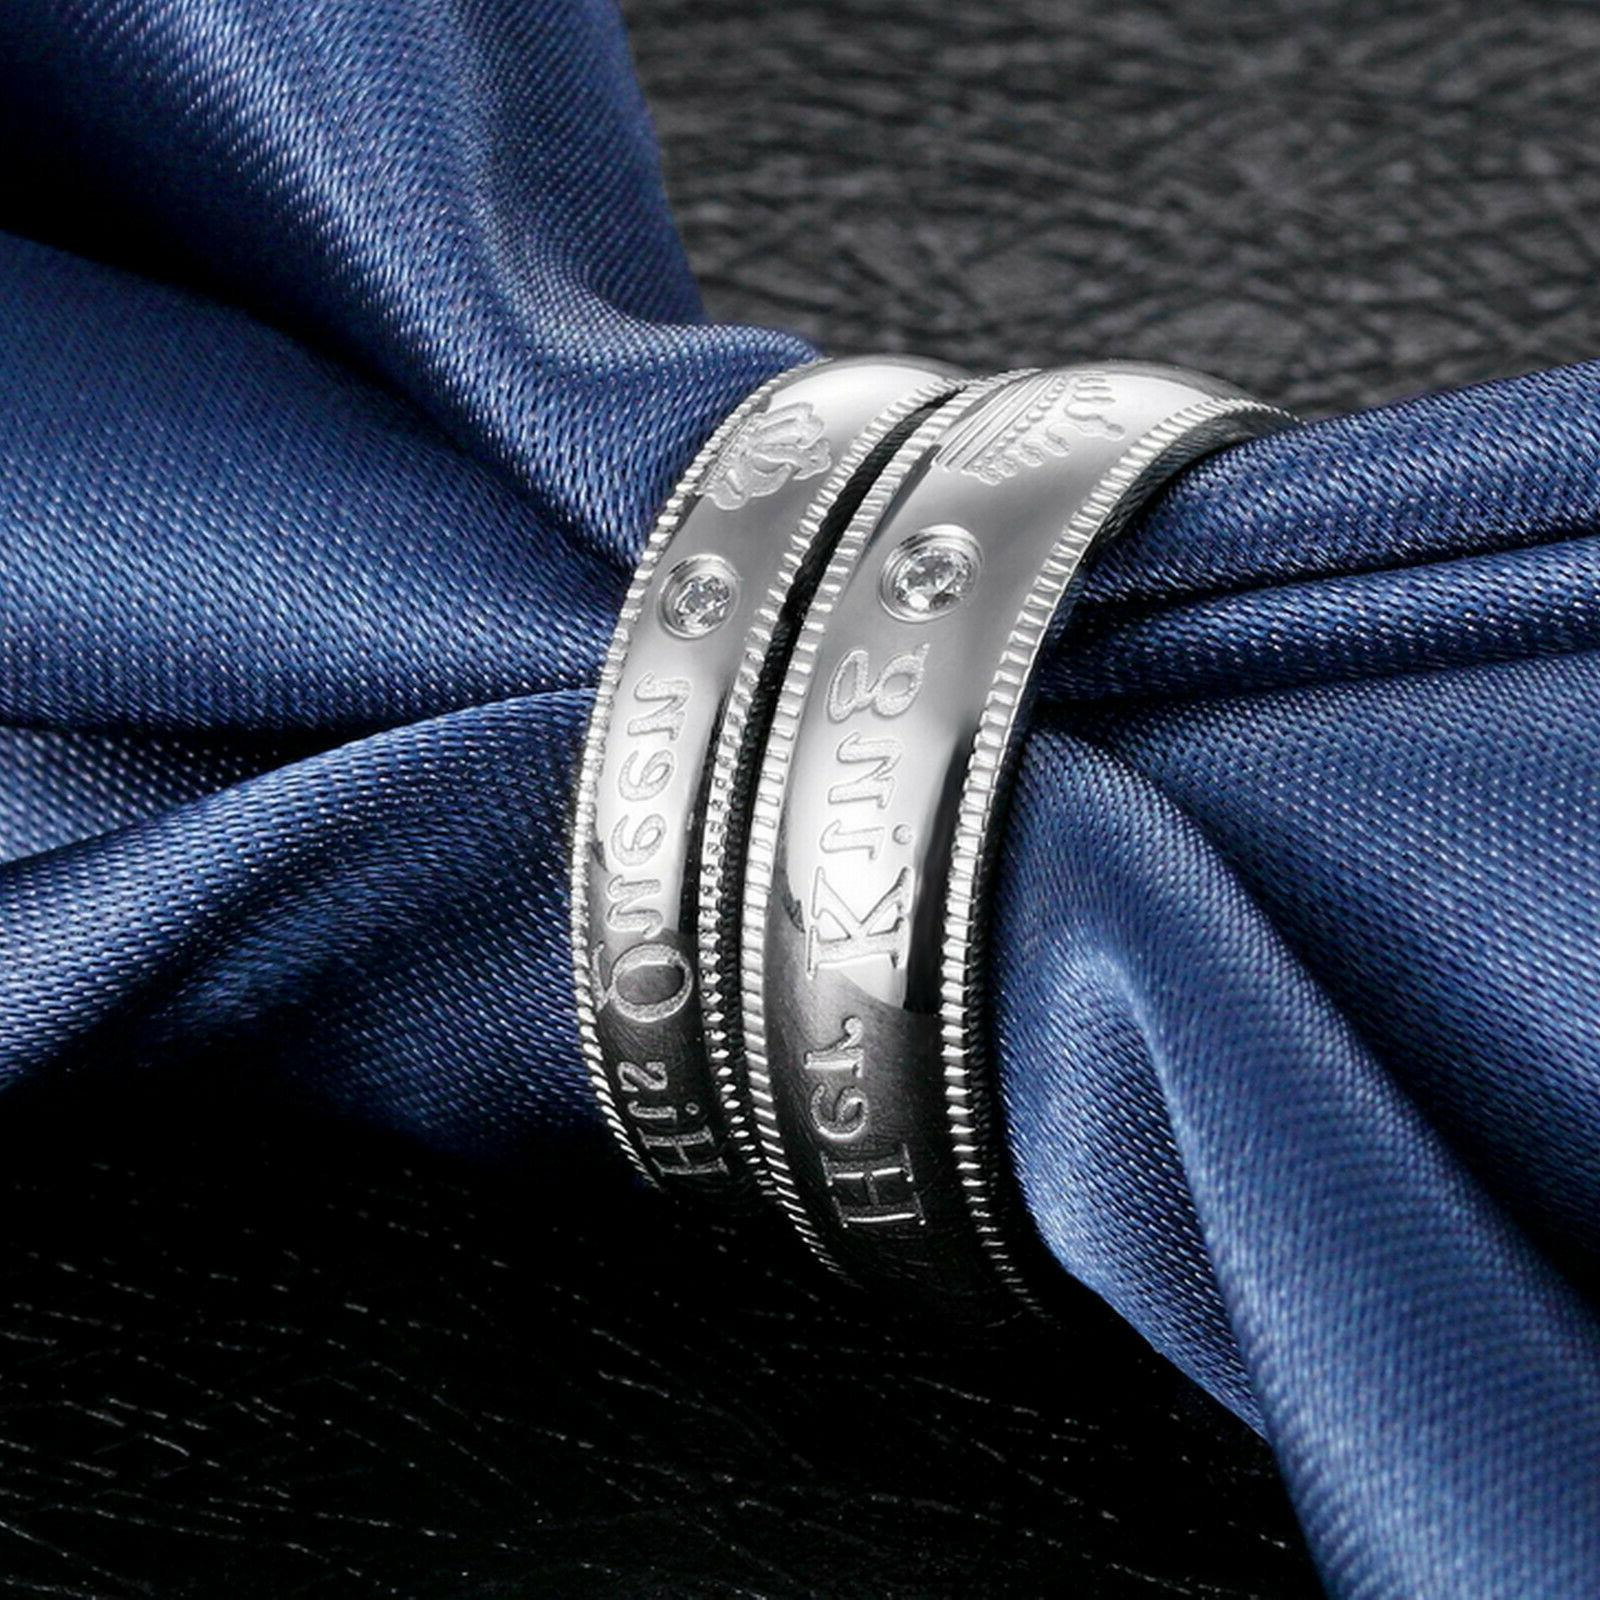 Her or Queen Couple's Matching Promise Ring Comfort Band